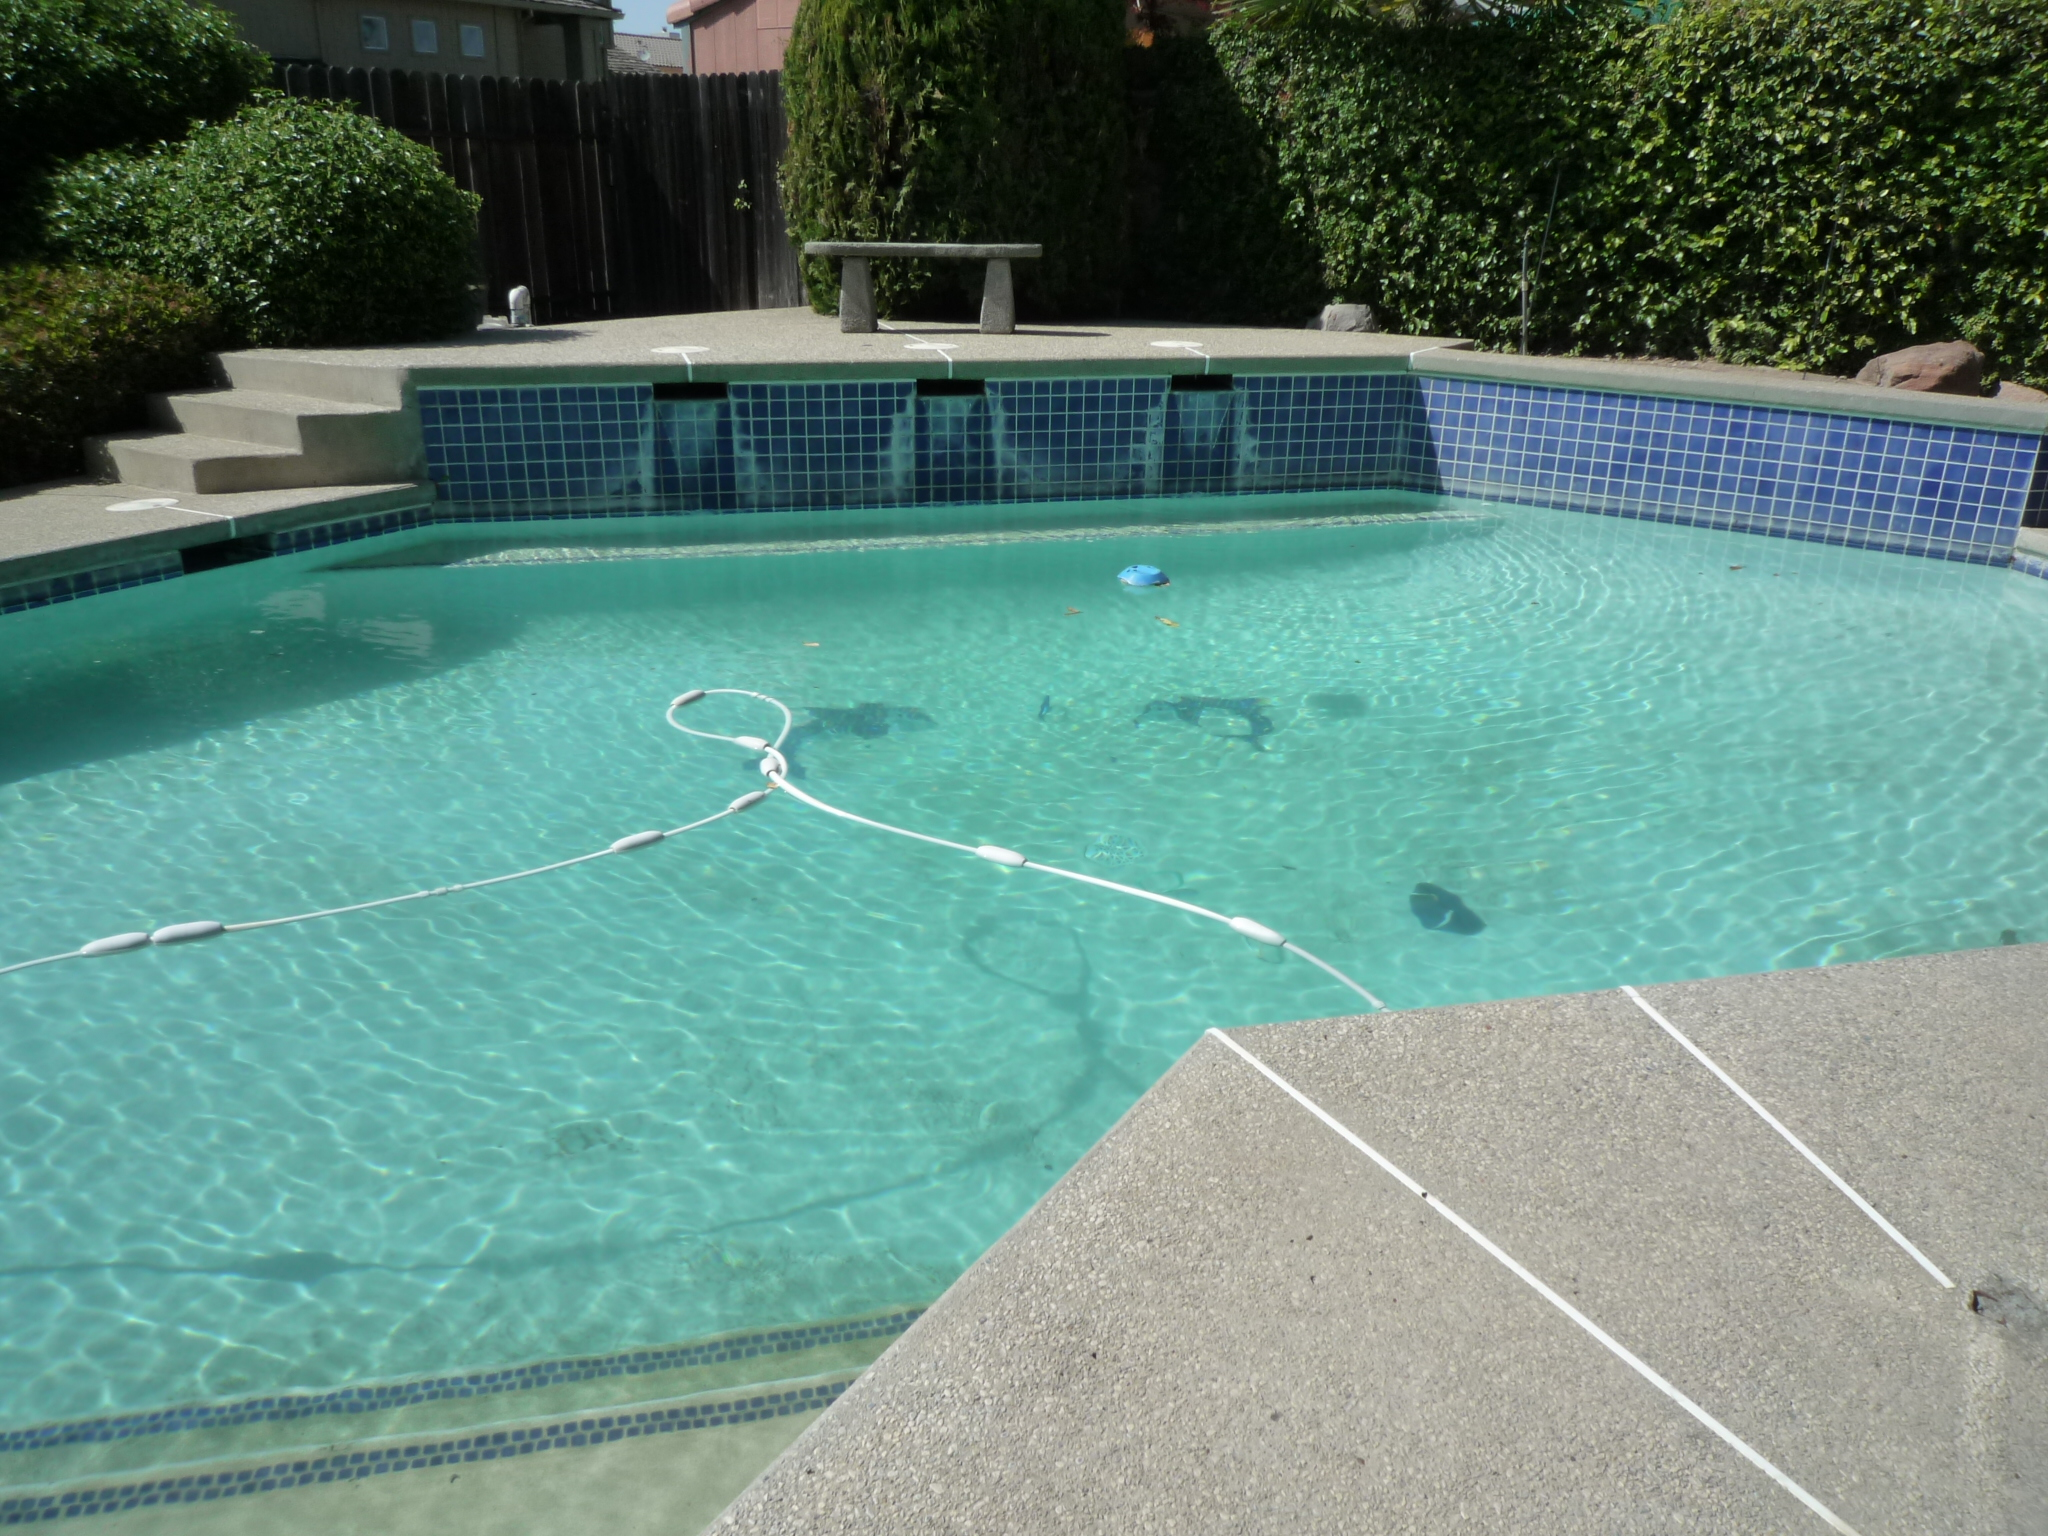 Homes with swimming pools now for sale free list for Houses with swimming pools inside for sale